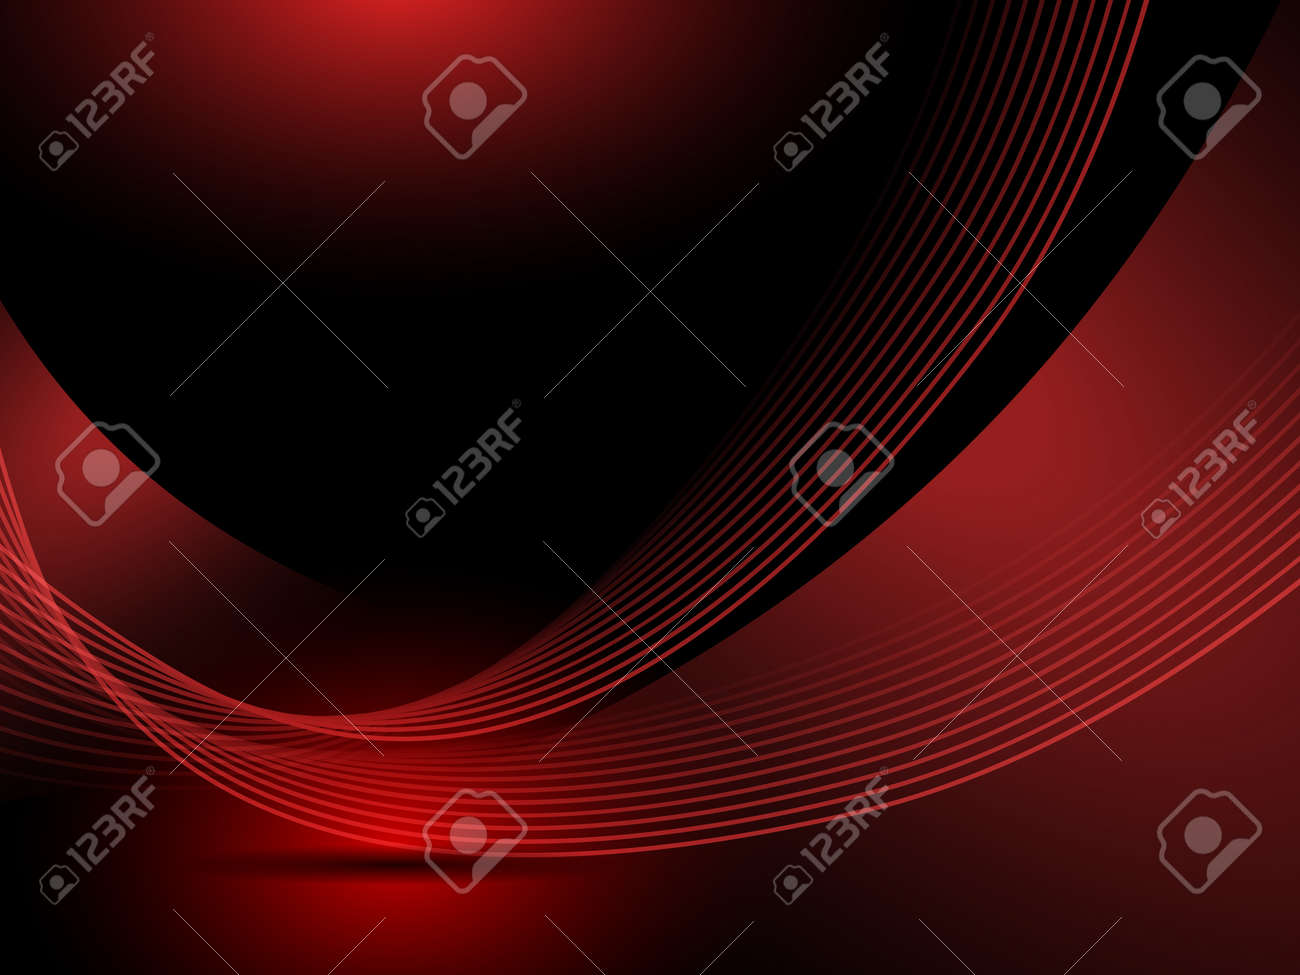 Abstract red background lines - 17901048